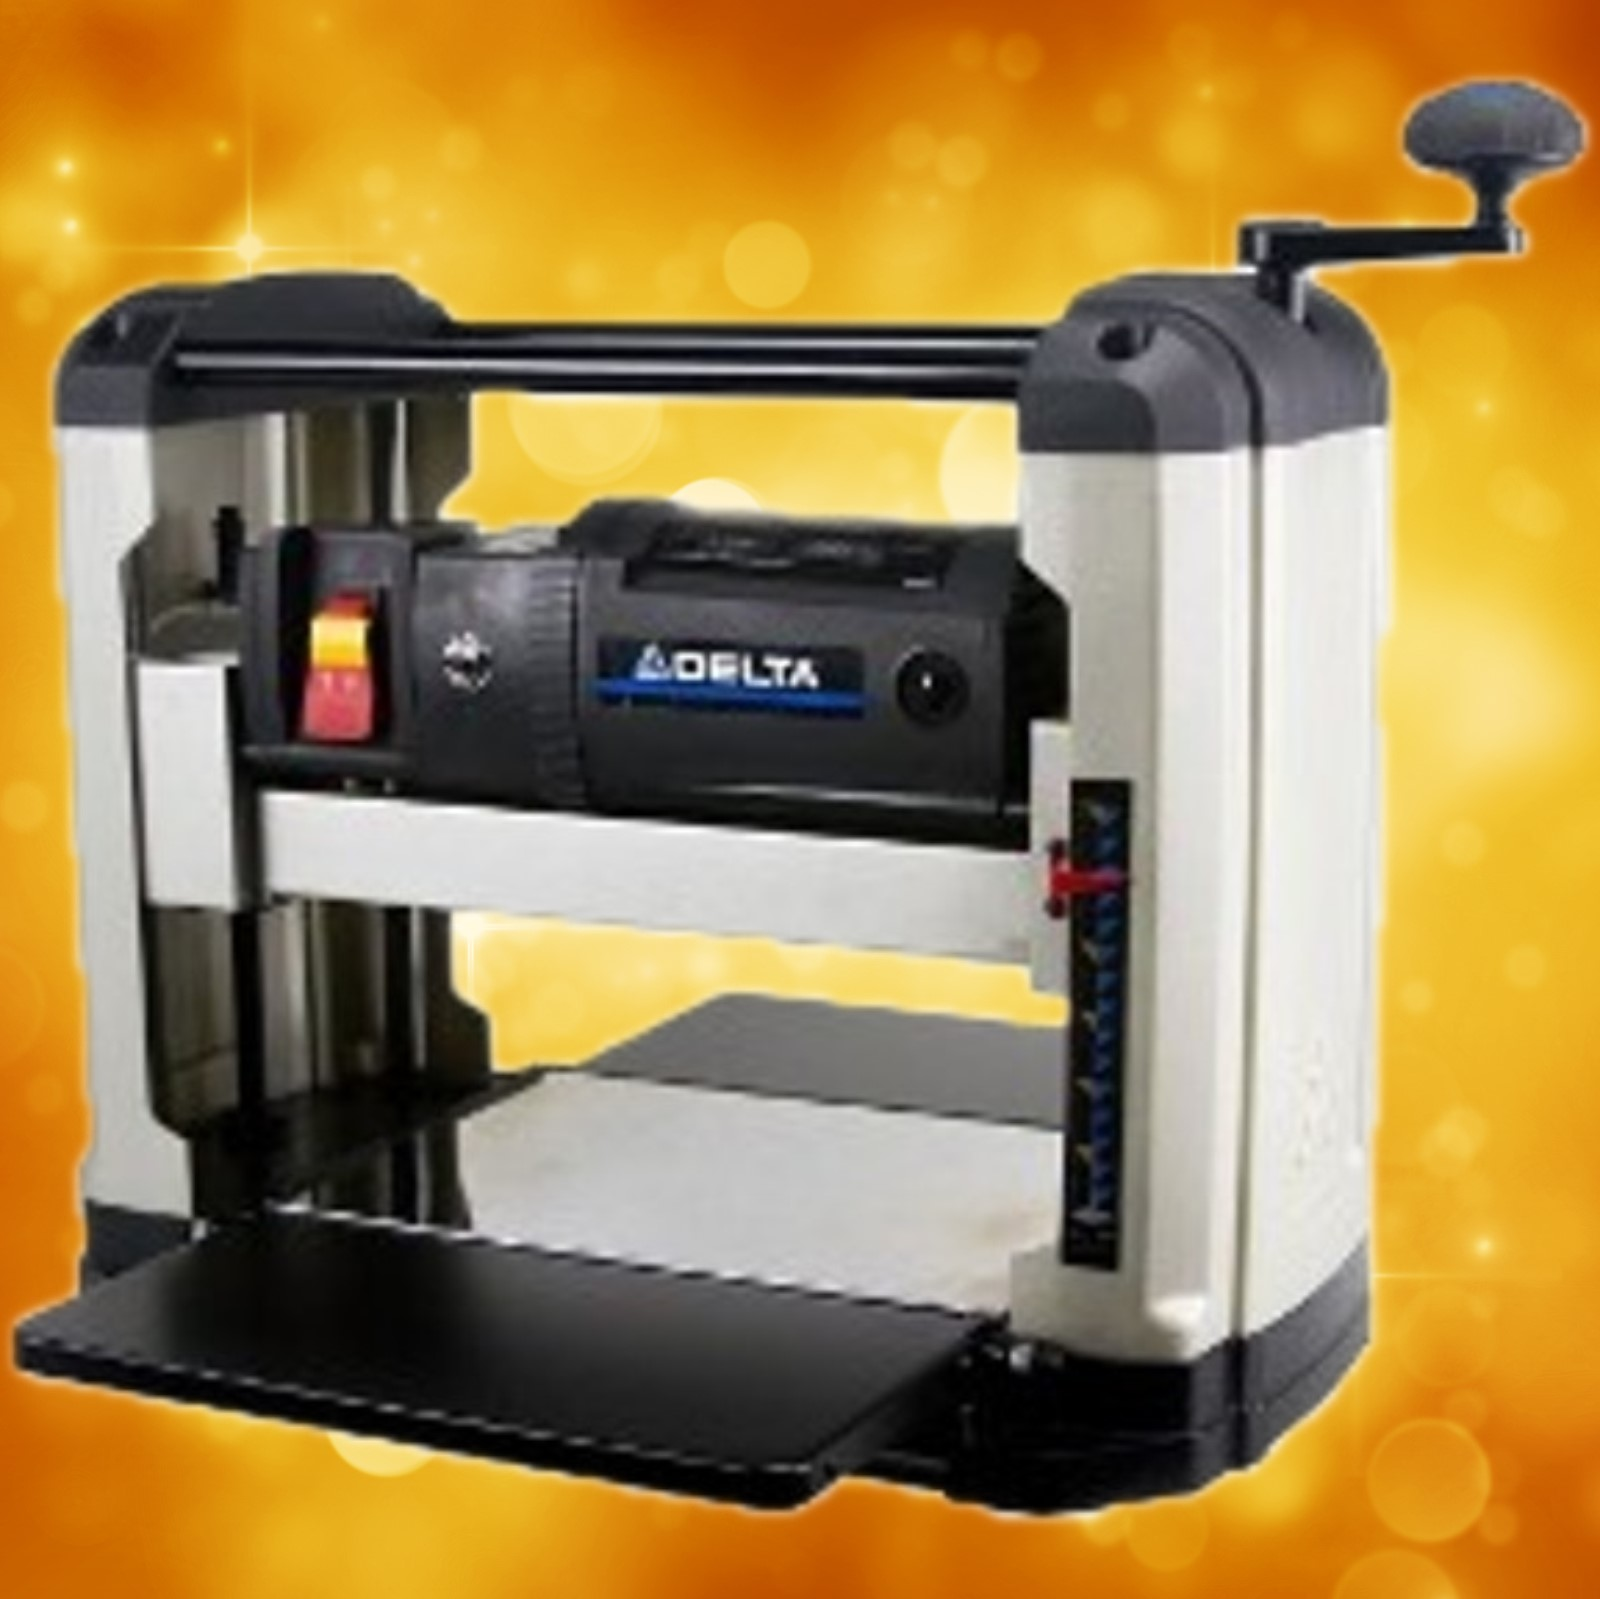 Delta 13 in. Portable Thickness Planer 22-555 (Floor Model) (Store Pick UP Only) 22-555U